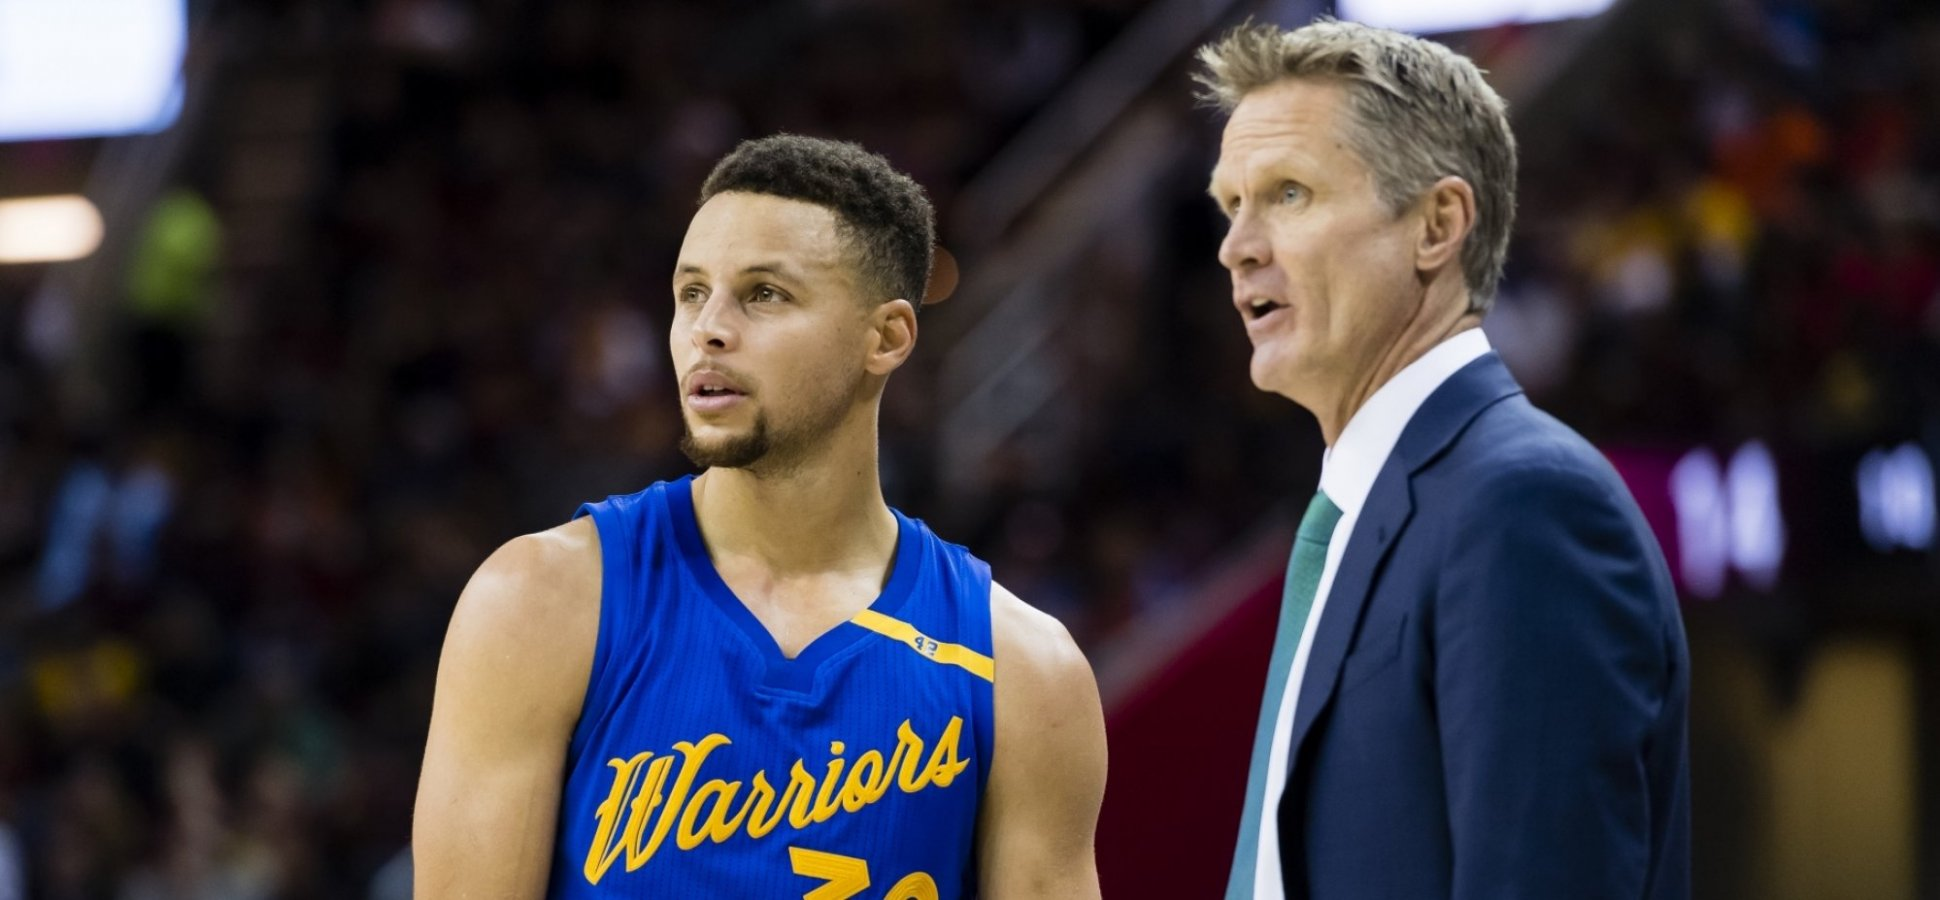 d8bd6b6242c2 This 30-Second Video of Steve Kerr and Steph Curry Is an Extraordinary  Lesson in Outstanding Leadership